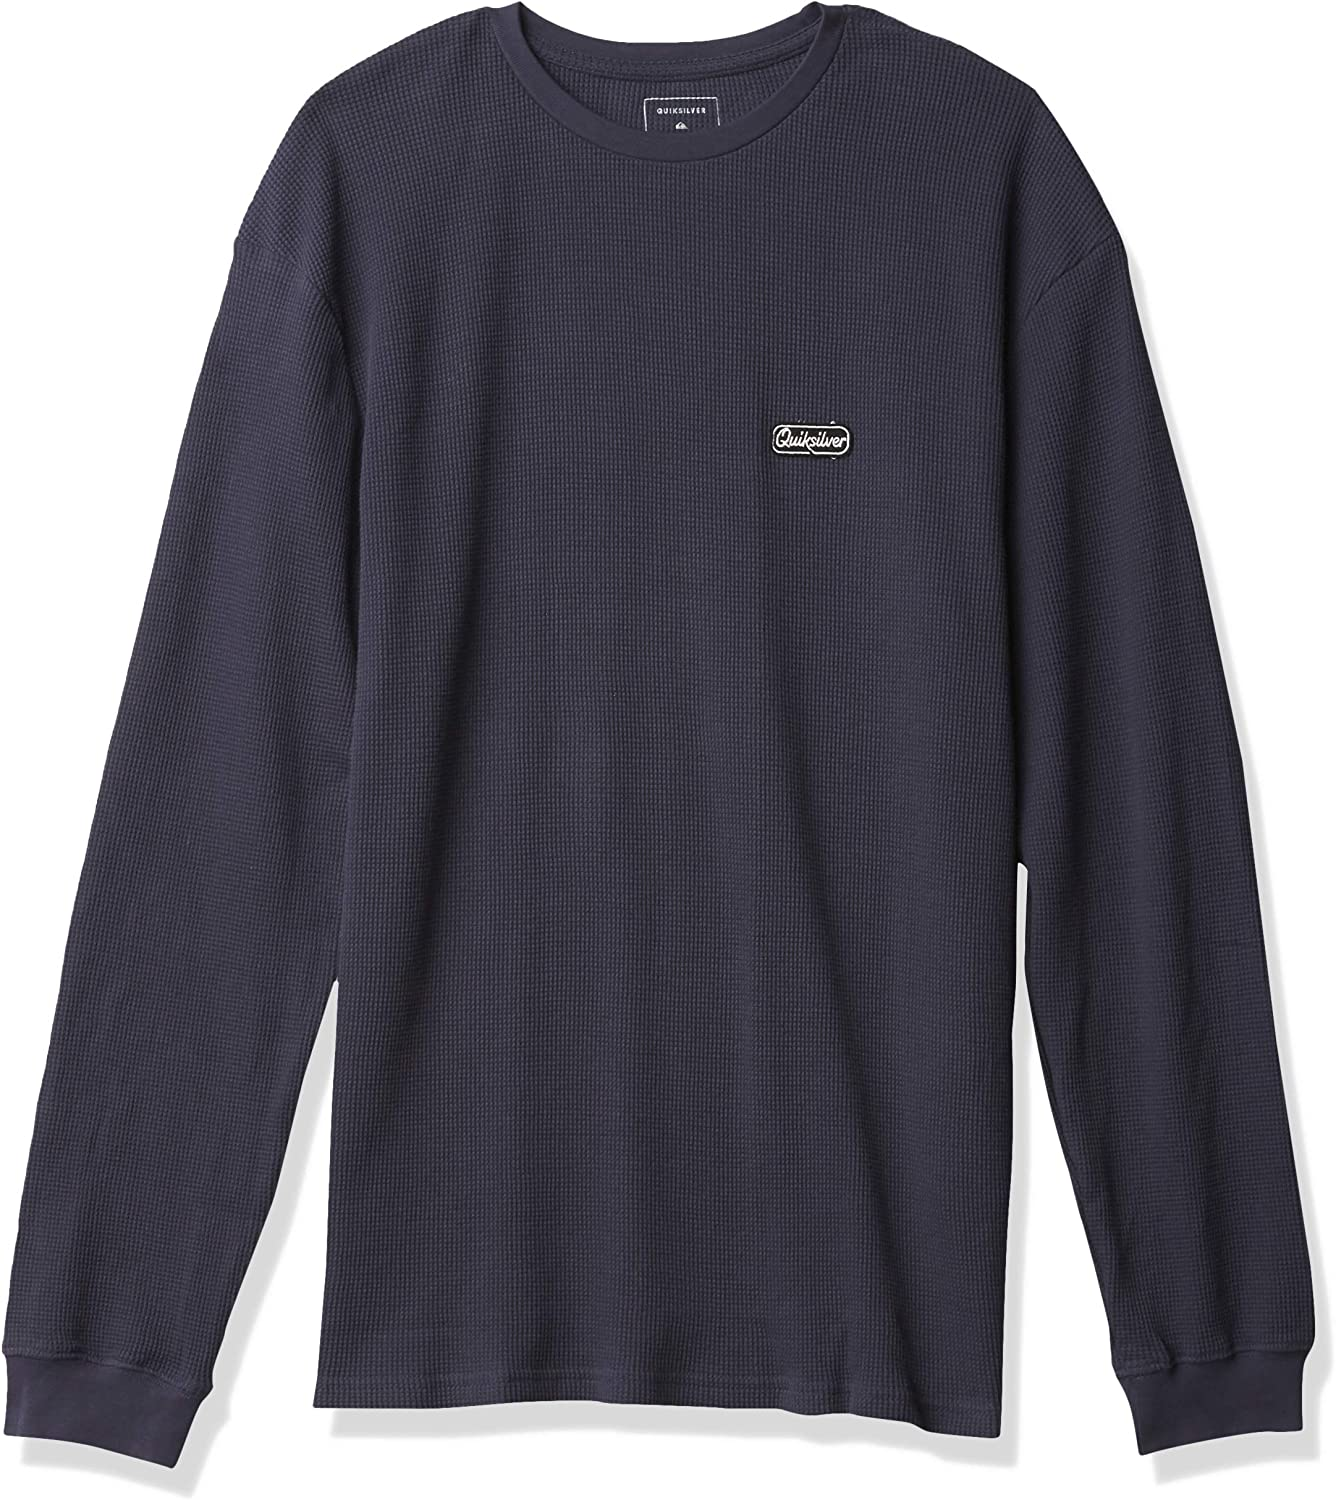 Quiksilver Boys LS Classic Long Sleeve Top